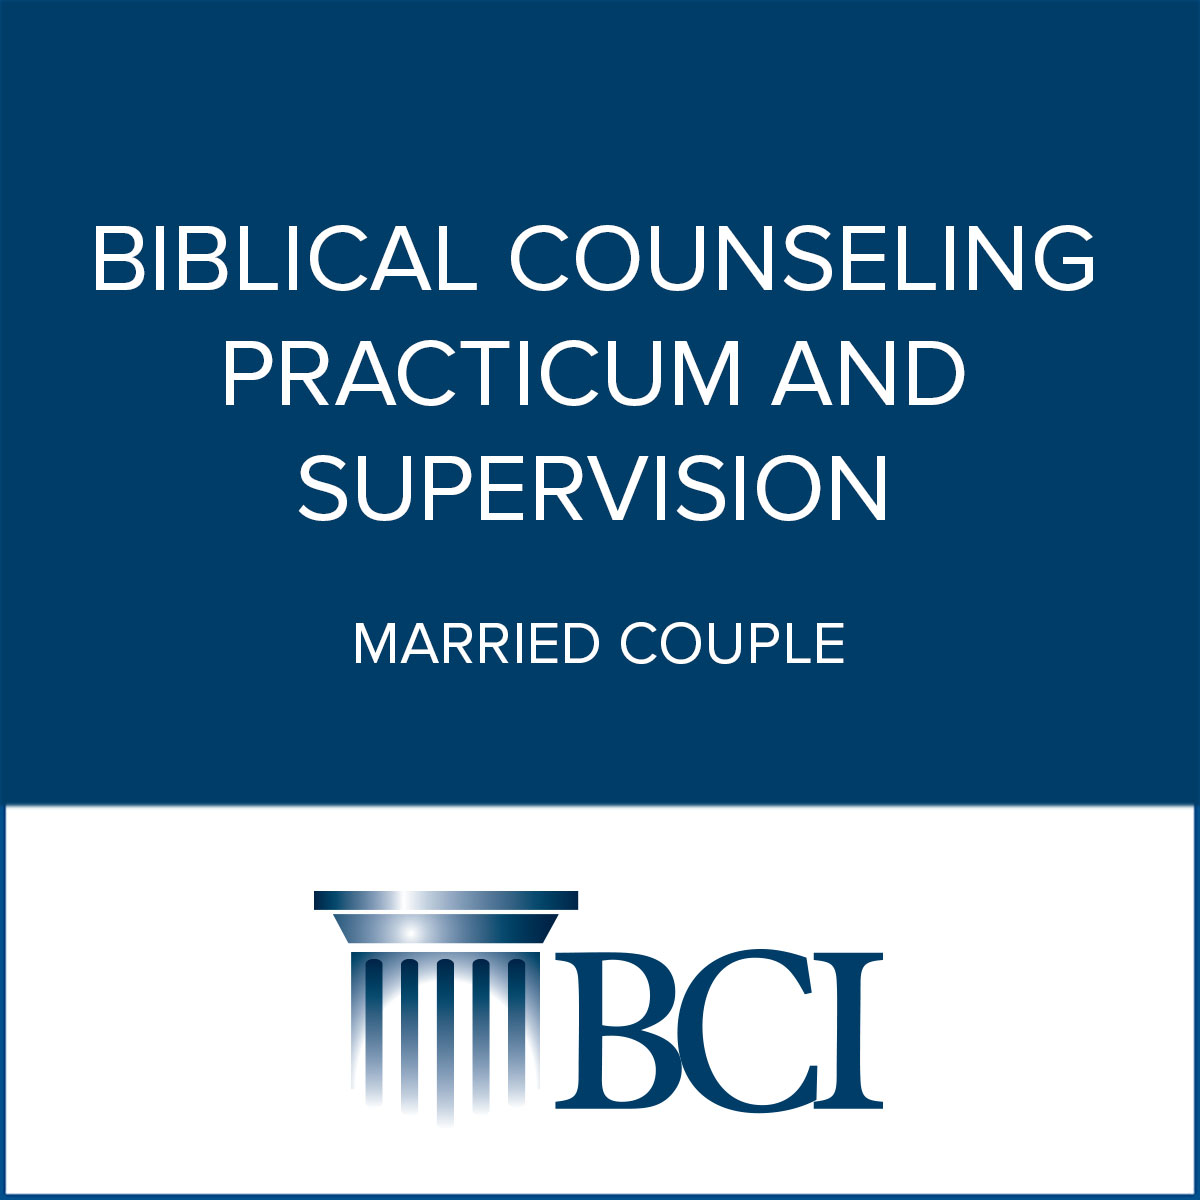 practicum-and-supervision-married-couple